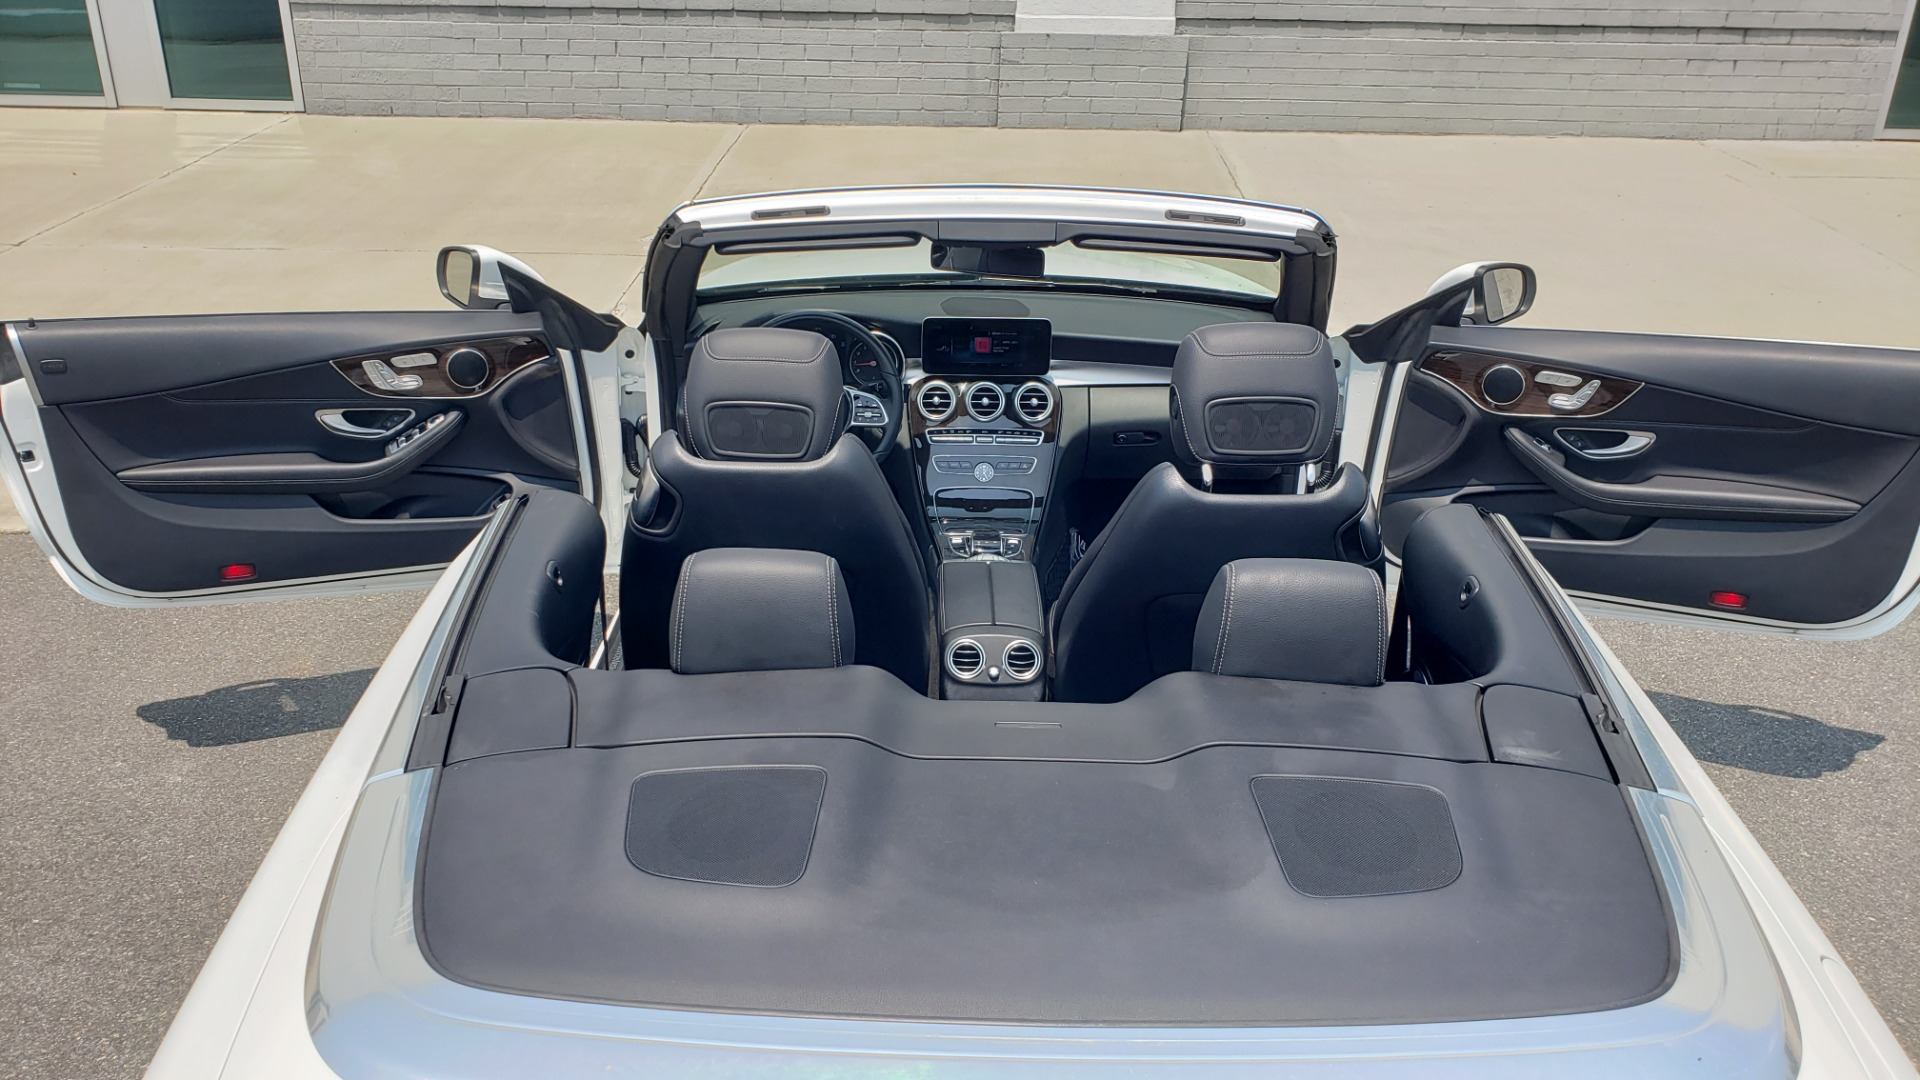 Used 2019 Mercedes-Benz C-CLASS C 300 CABRIOLET 2.0L / AUTO / NAV / HD RADIO / REARVIEW for sale $46,995 at Formula Imports in Charlotte NC 28227 33